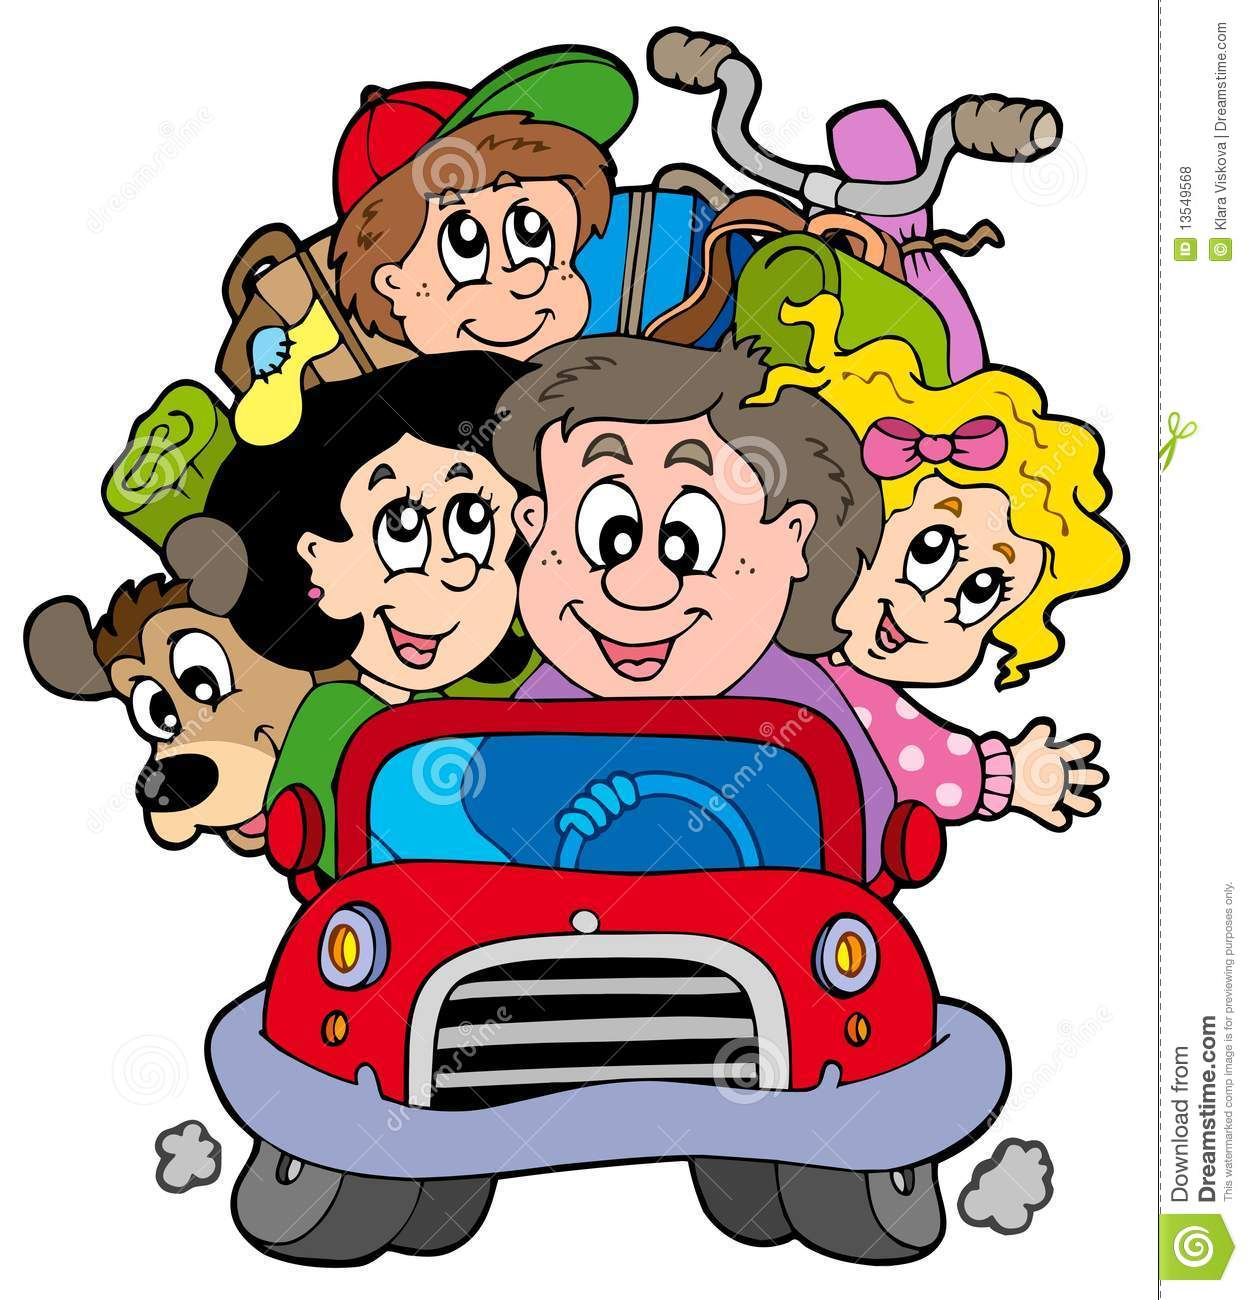 clipart of family vacation - photo #43